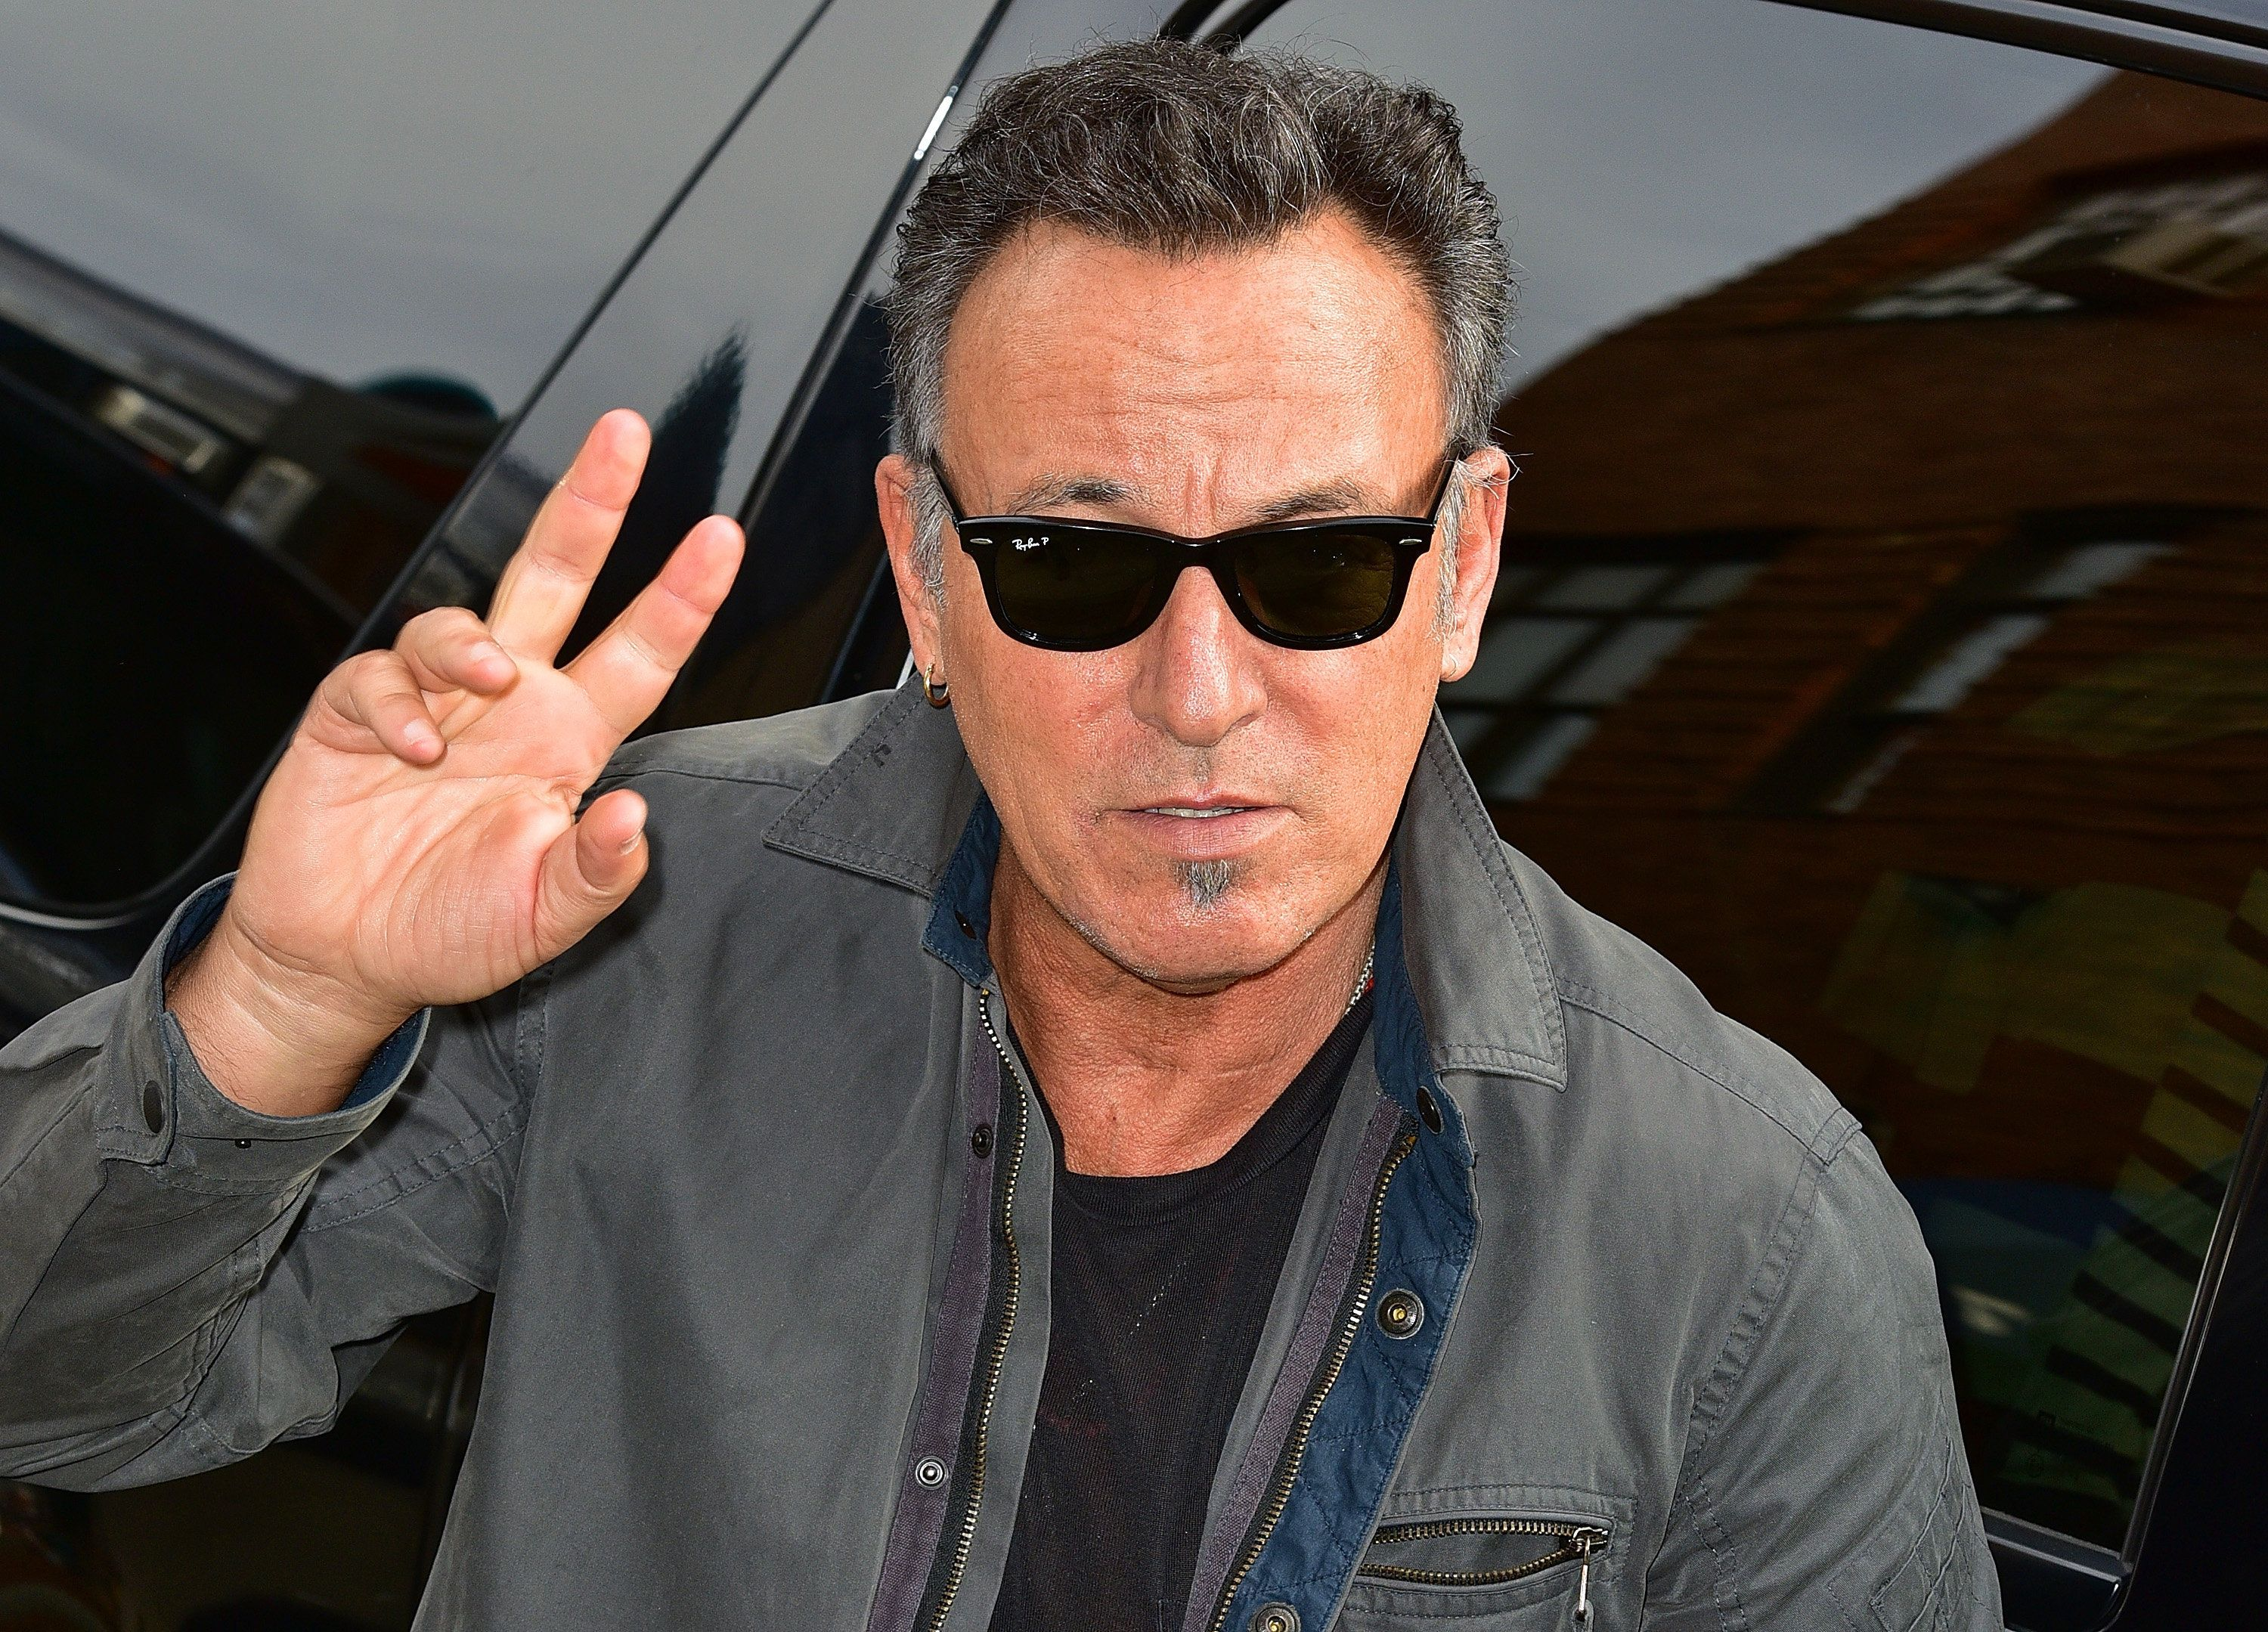 NEW YORK, NY - AUGUST 06:  Bruce Springsteen arrives to 'The Daily Show With Jon Stewart' at The Daily Show Building on August 6, 2015 in New York City.  (Photo by James Devaney/GC Images)